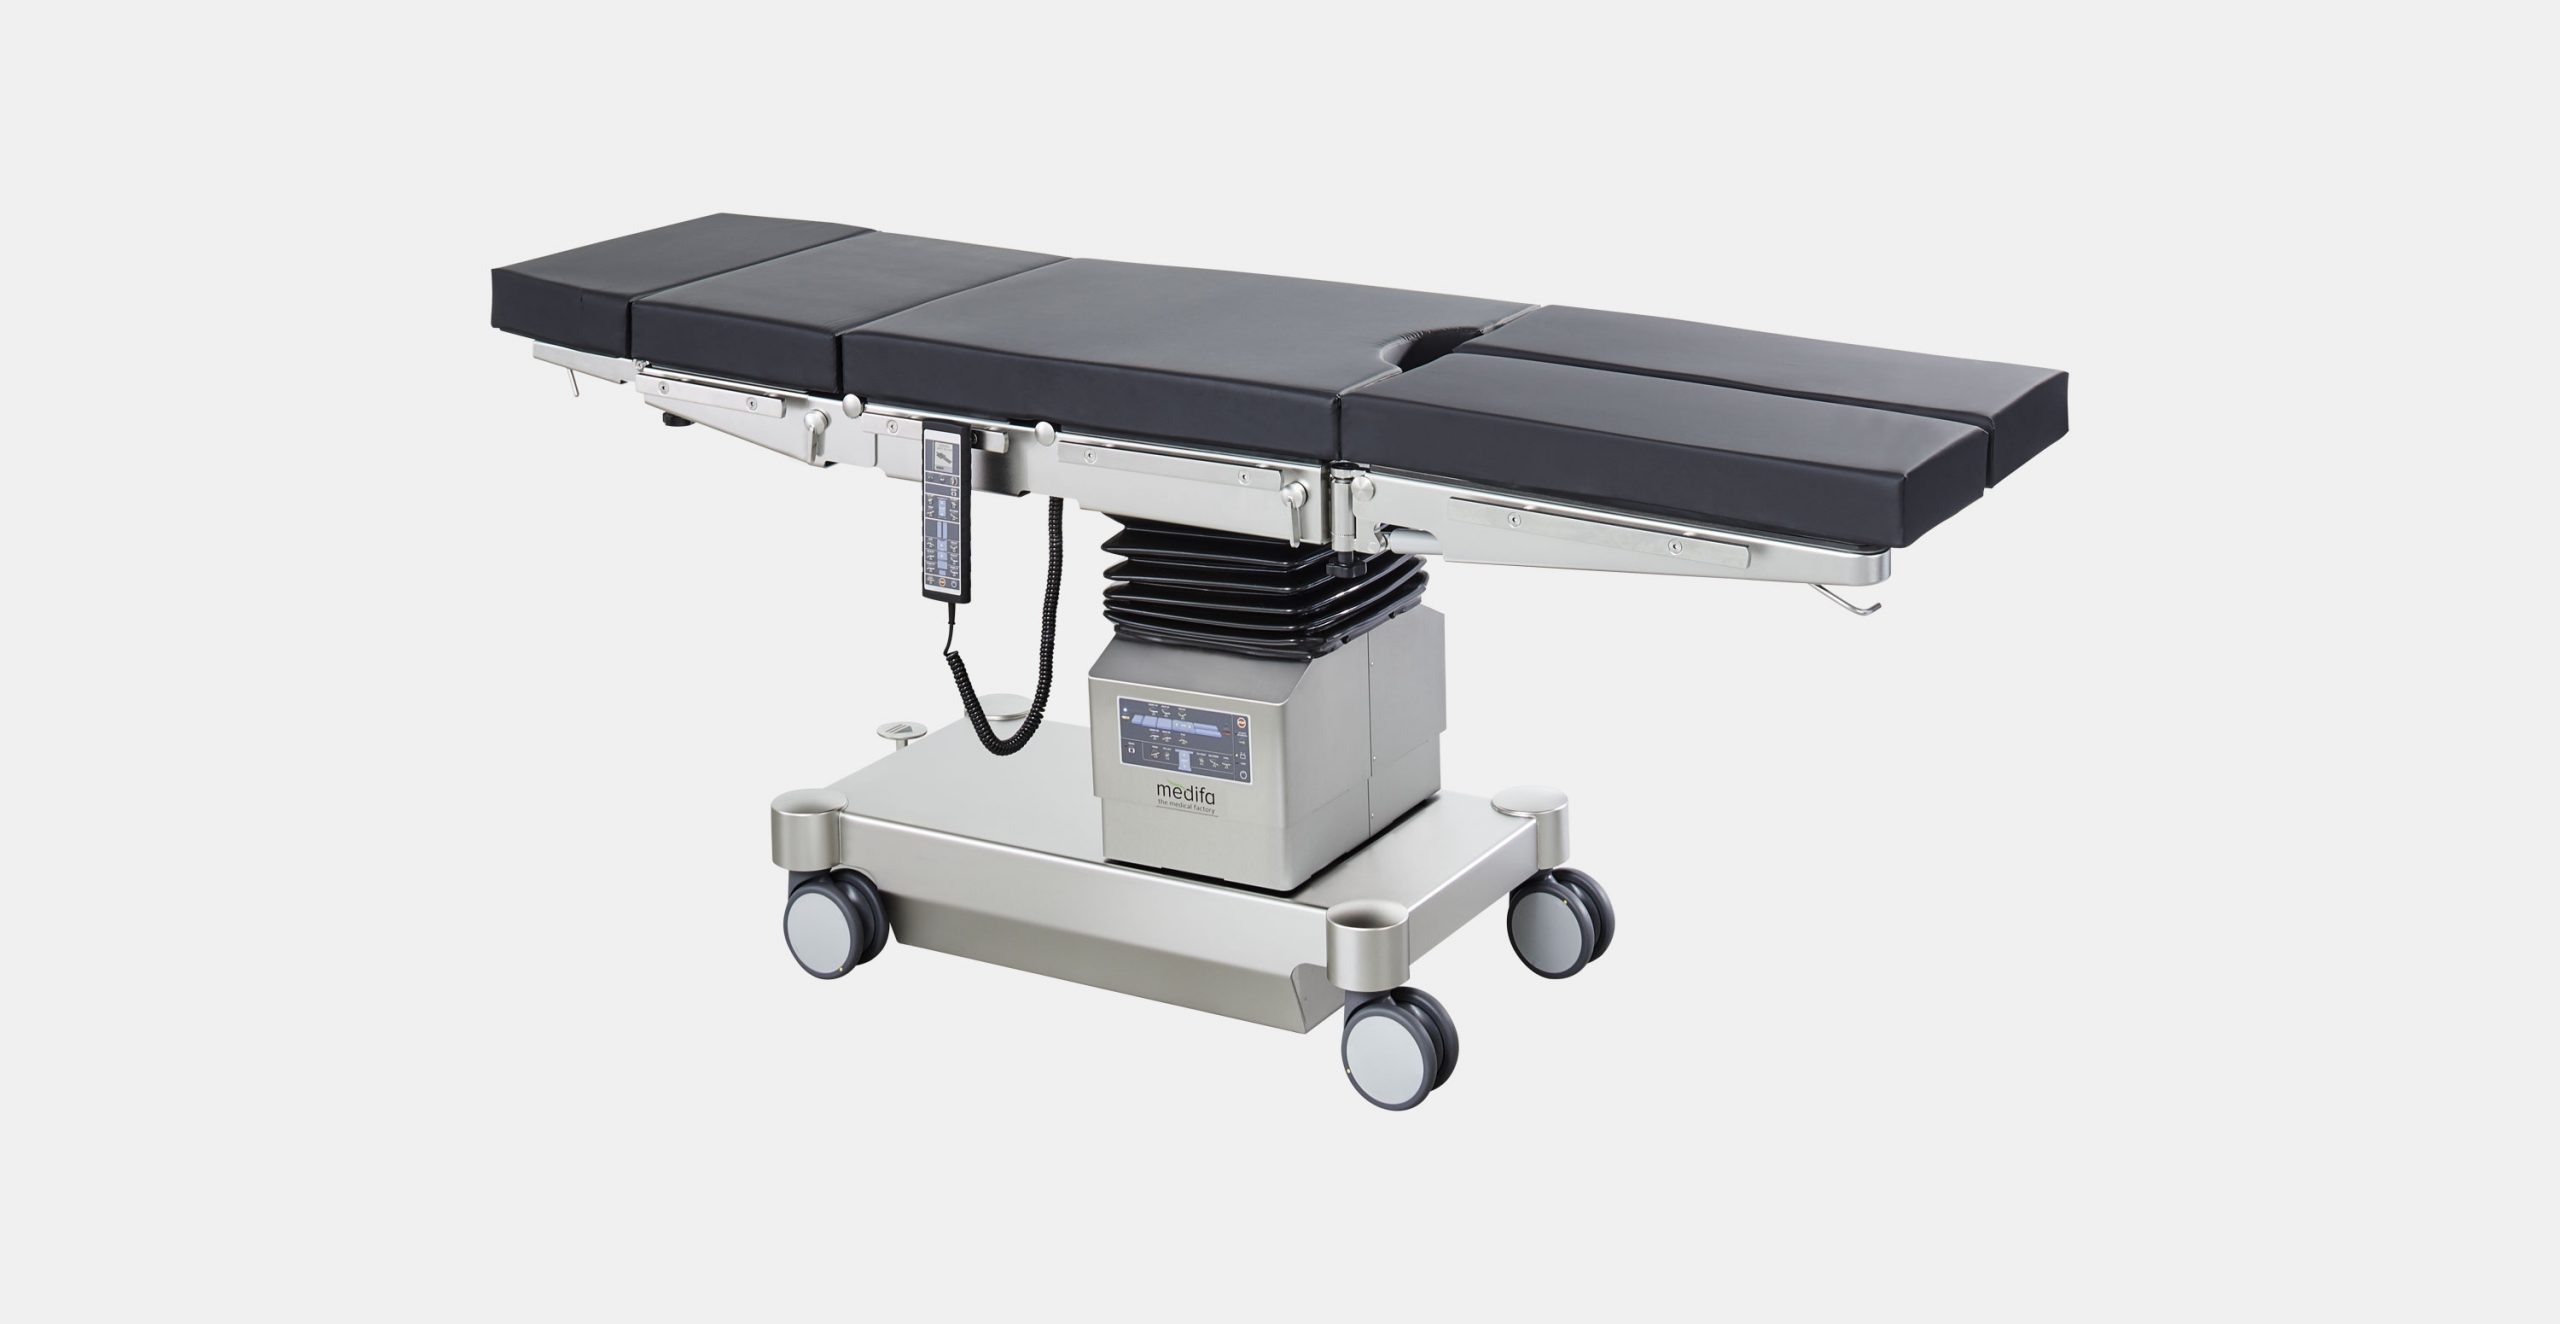 Mobile operating table with two electrohydraulical adjustable joints and longitudinal sliding medifa 6000